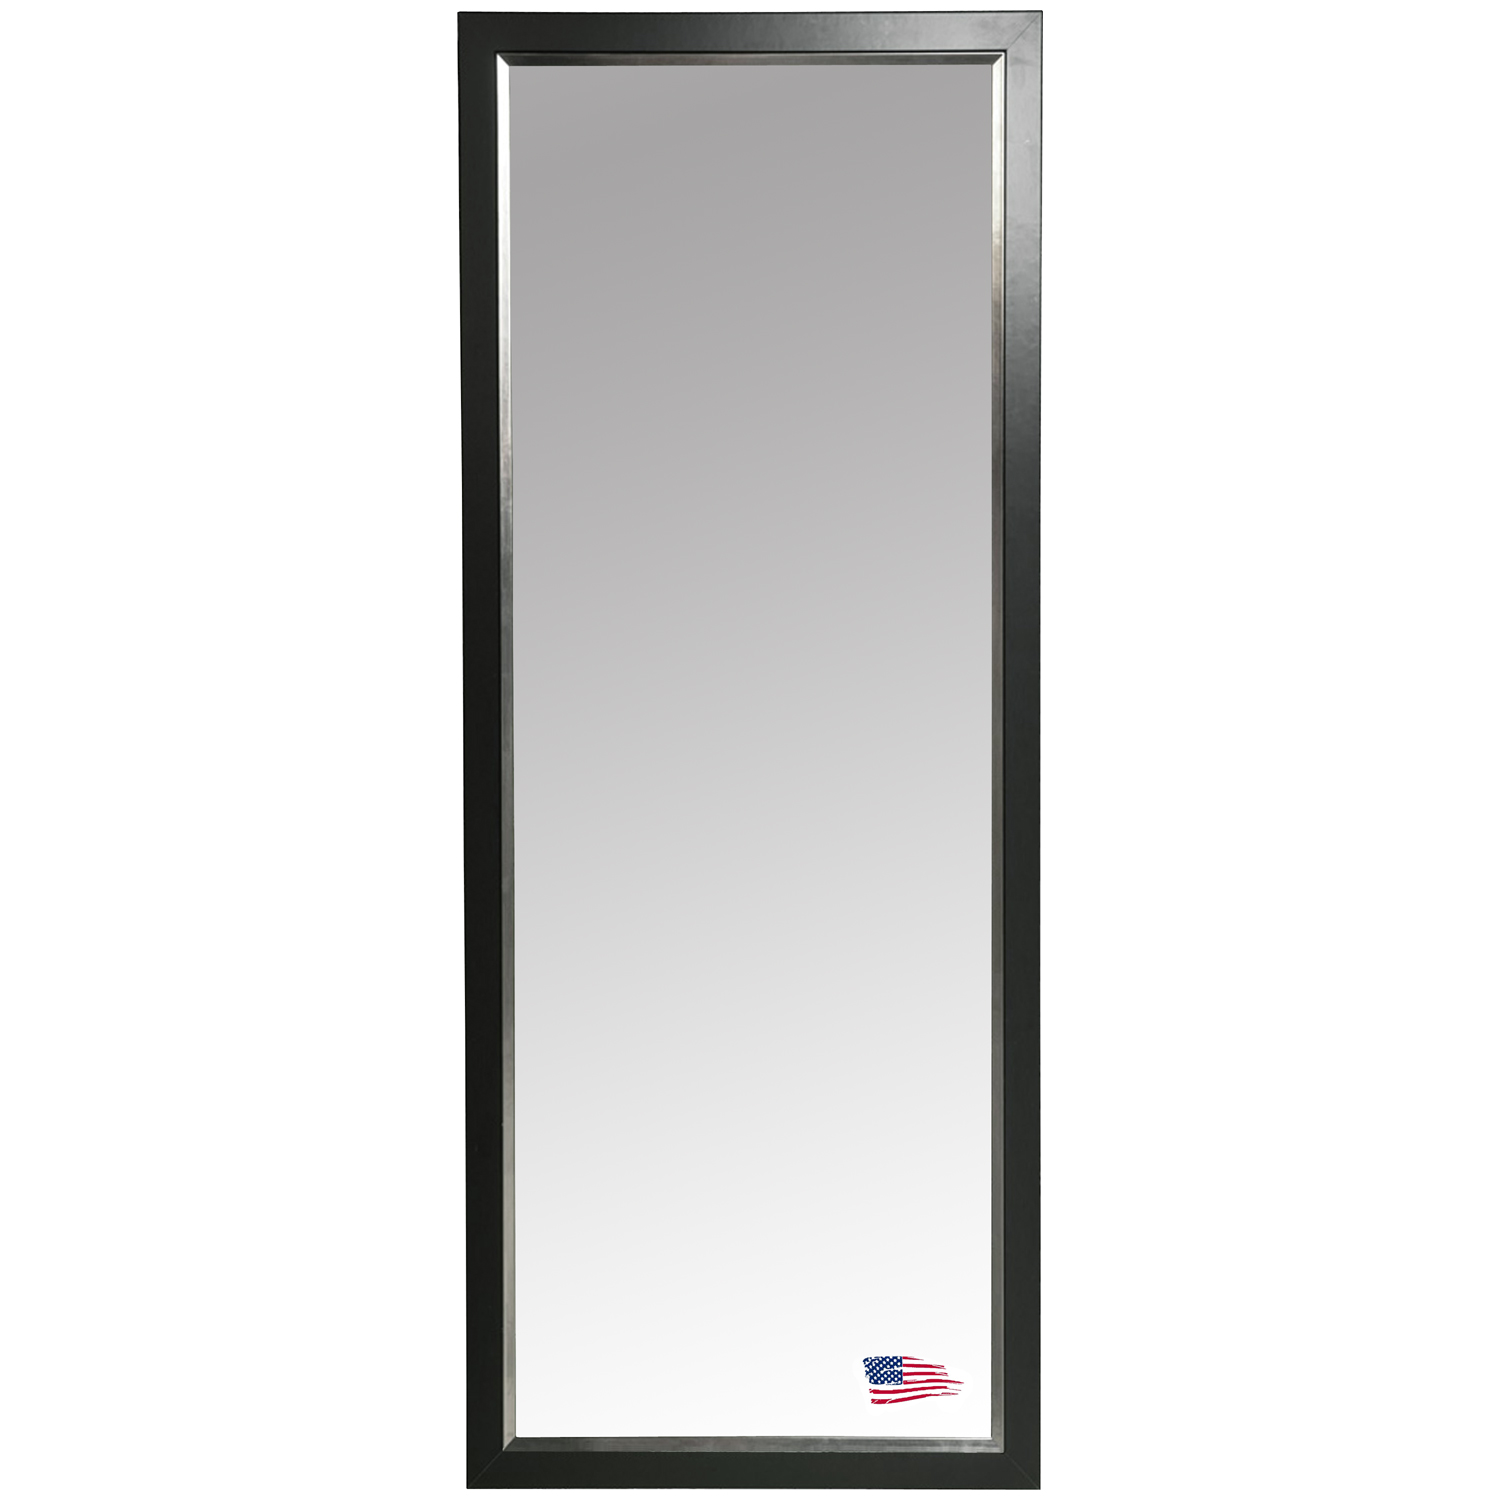 Rectangular Mirror - Black Frame, Silver Liner - RAY-R010T